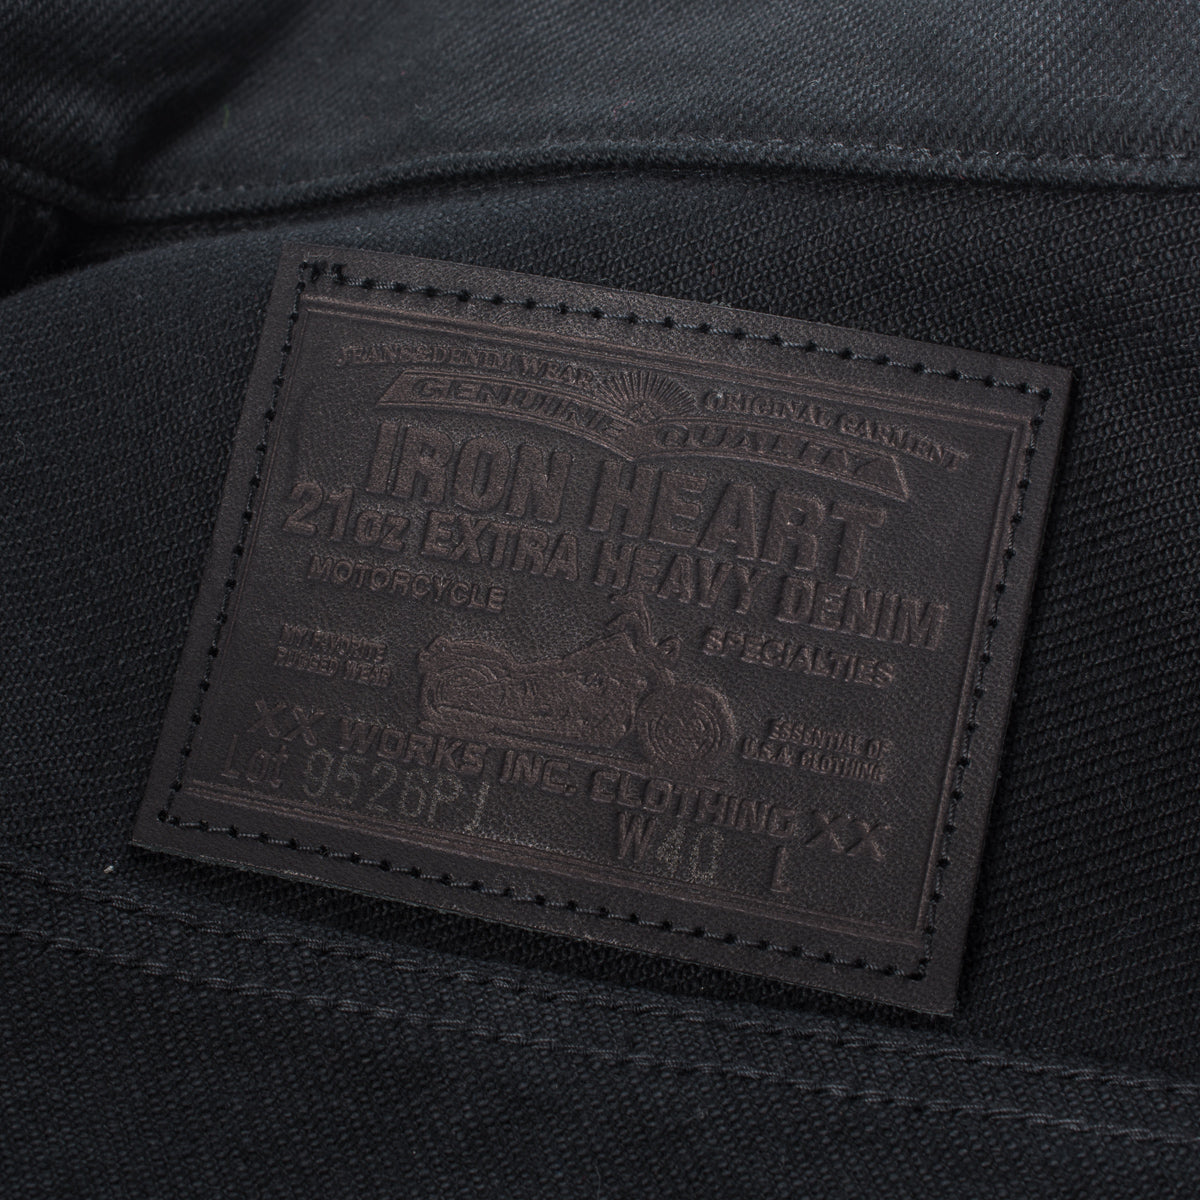 IH-9526PJ - 21oz Denim Type III Jacket Superblack